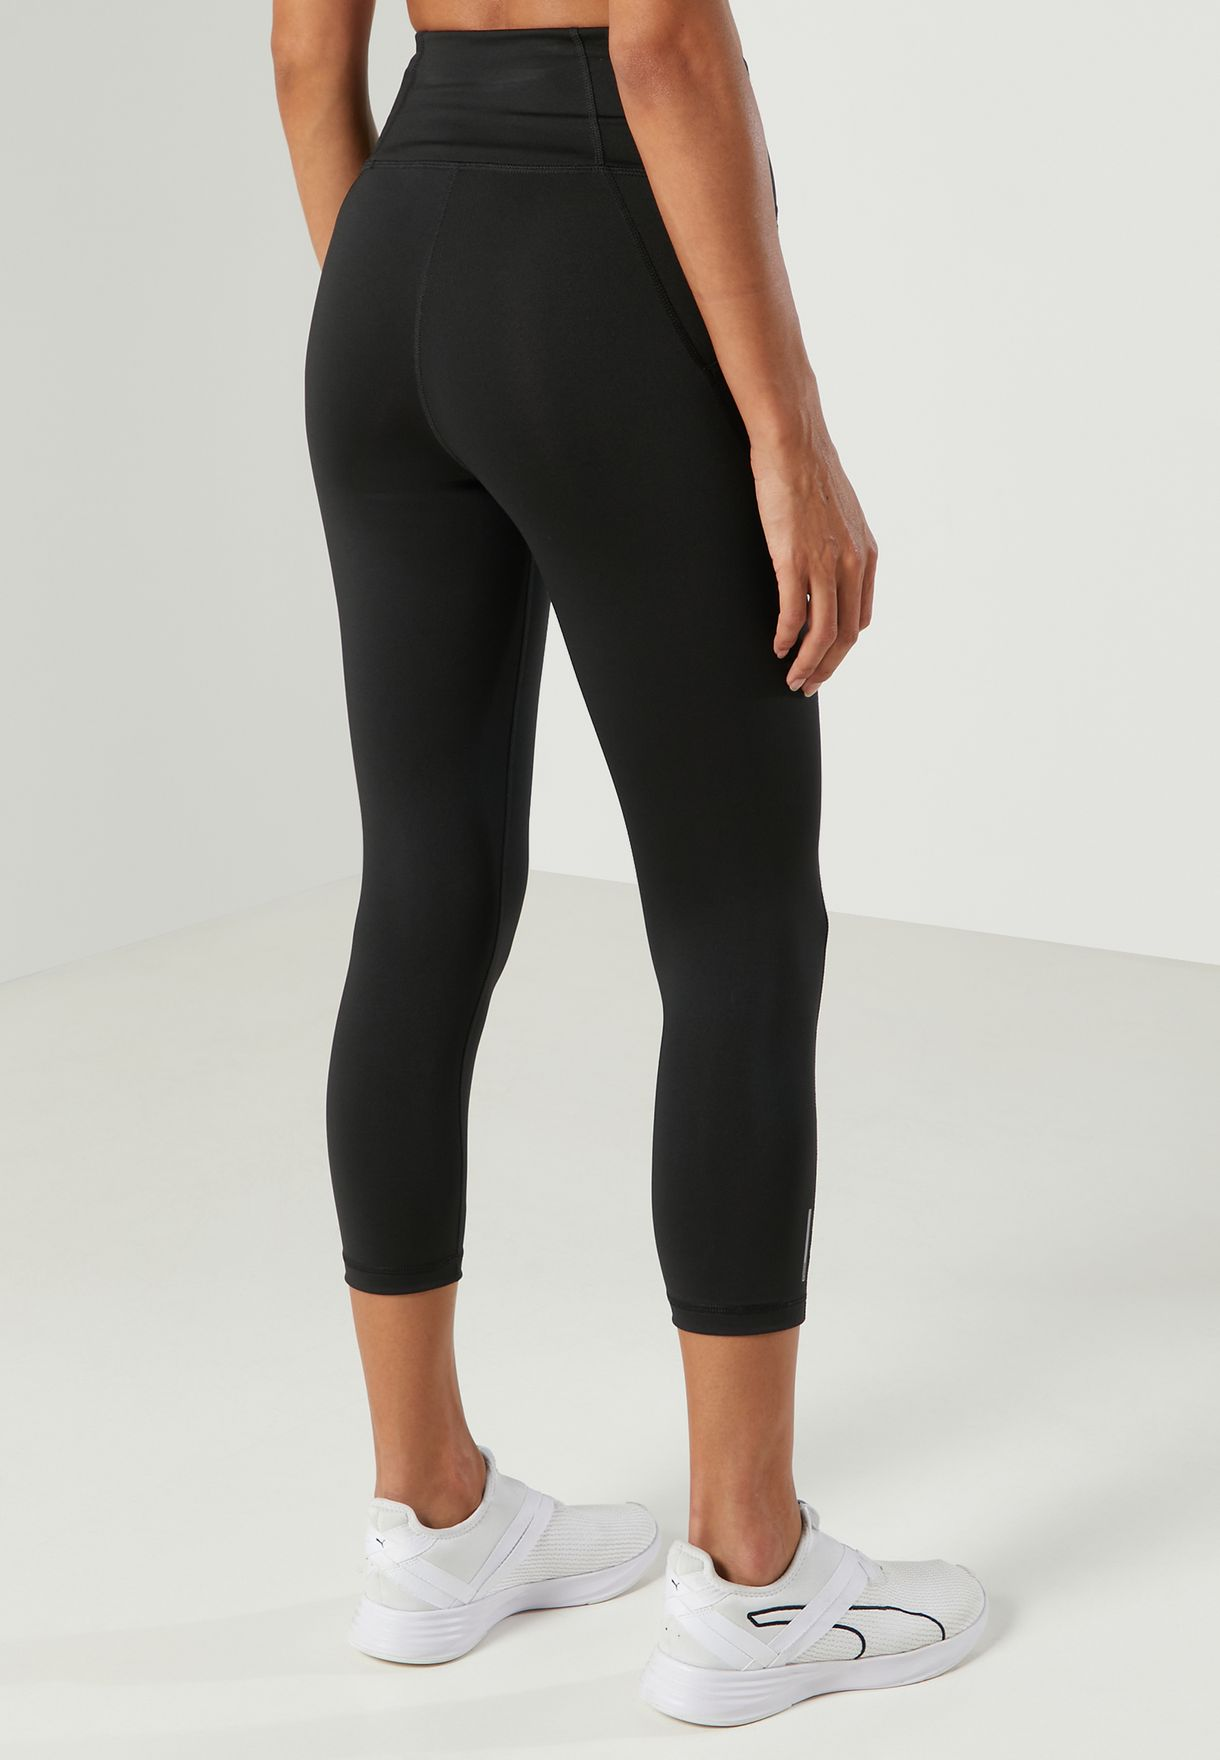 3/4 Favorite Forever High Waist Tights